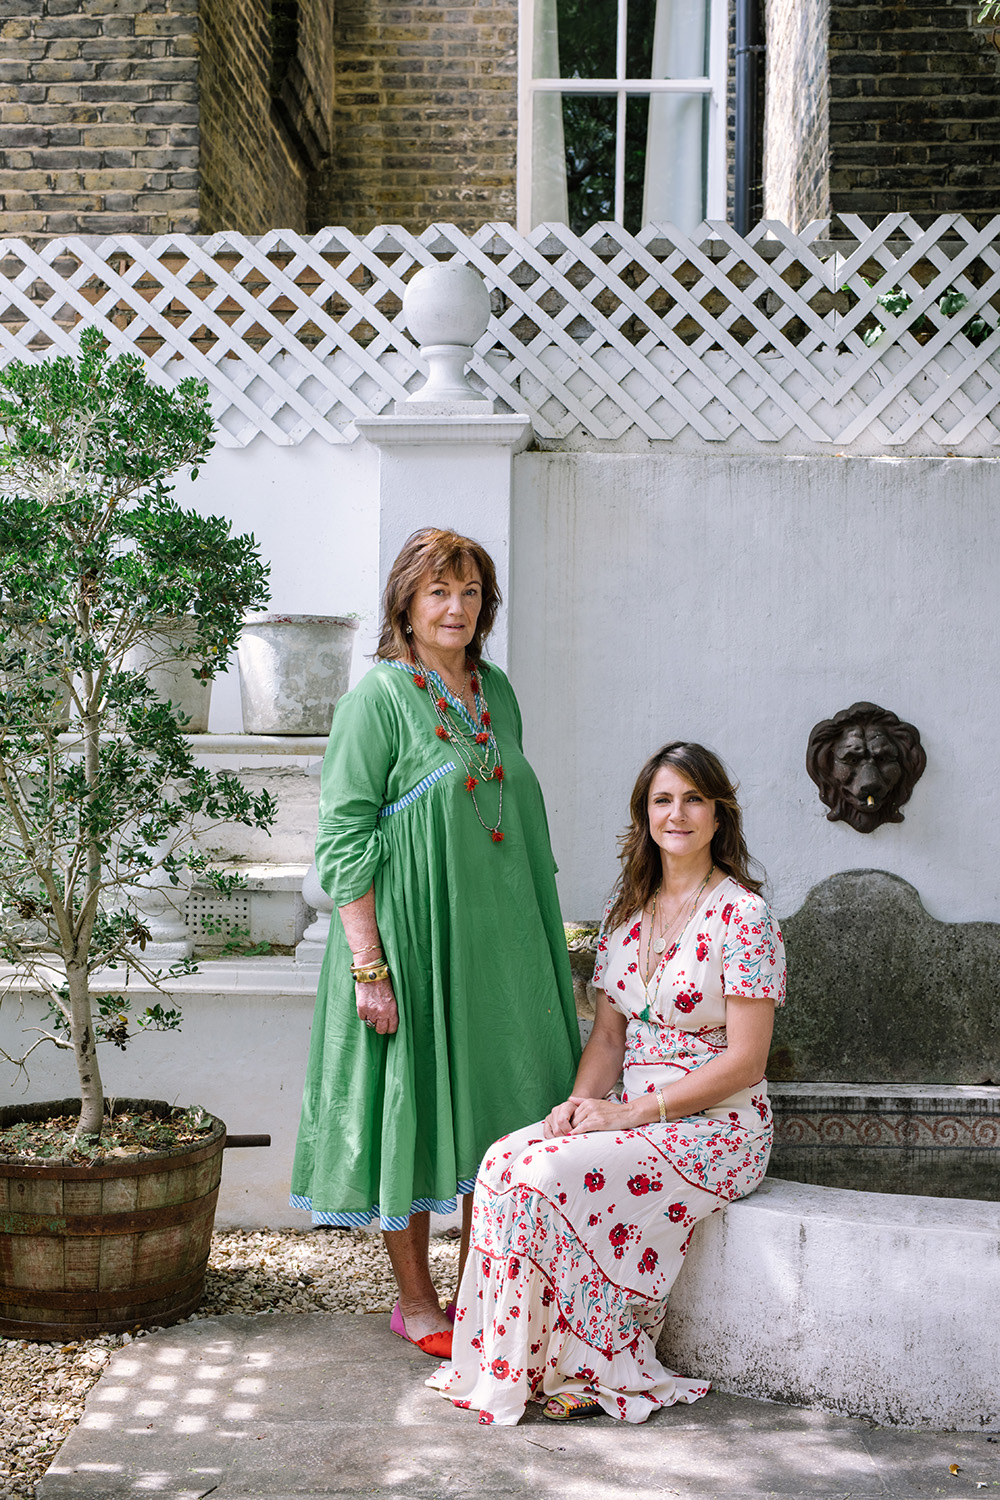 Penny Morrison and Sarah Vanrenen for Town and Country